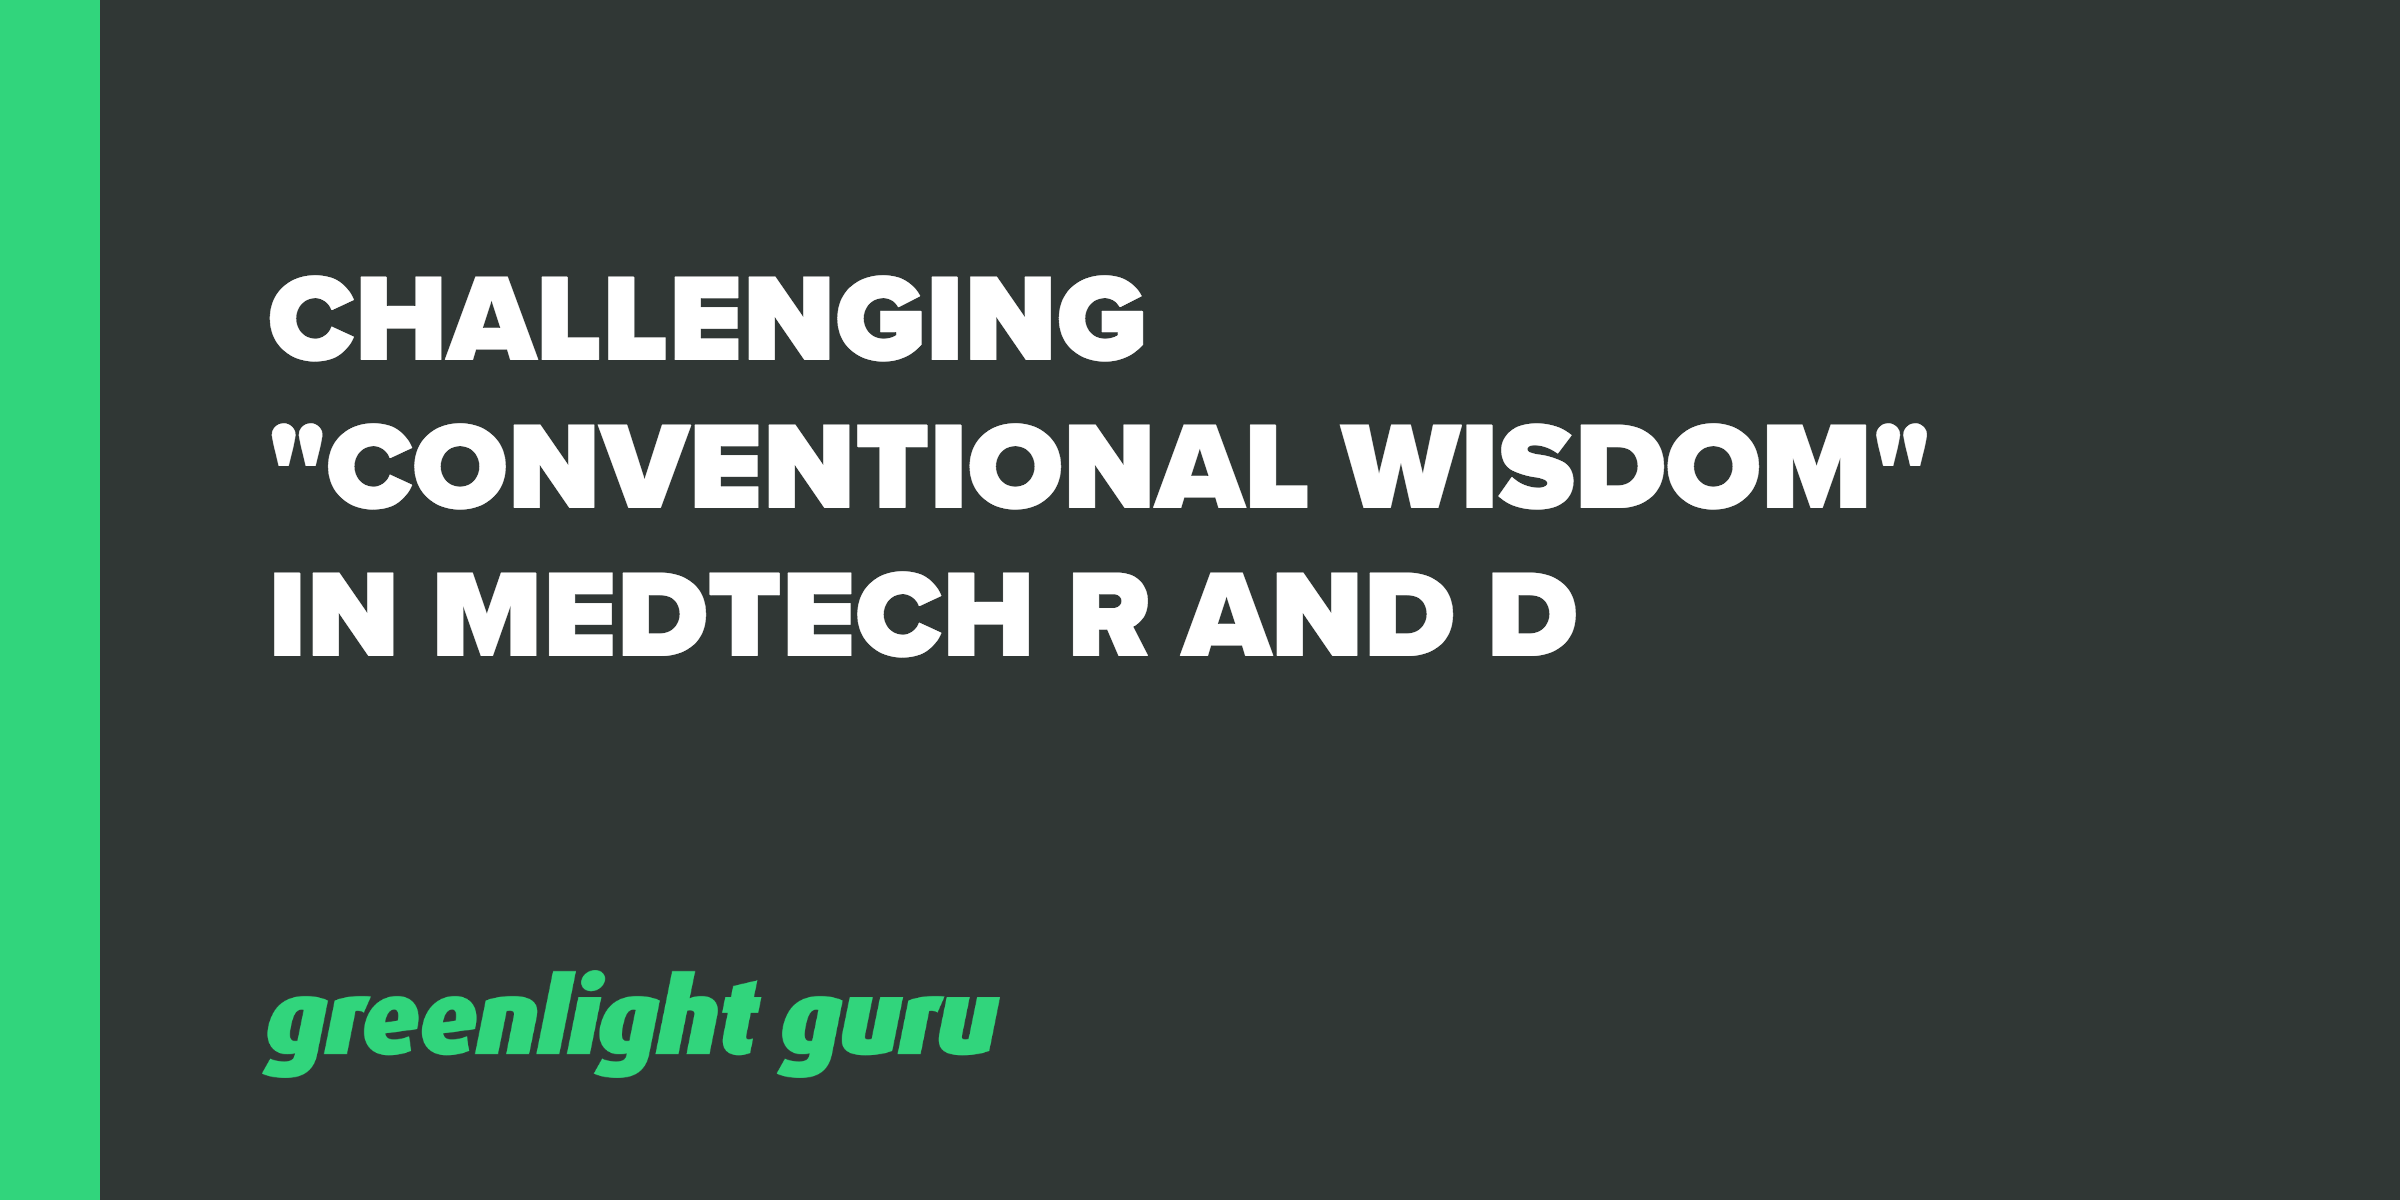 conventional-wisdom-medtech-r-and-d